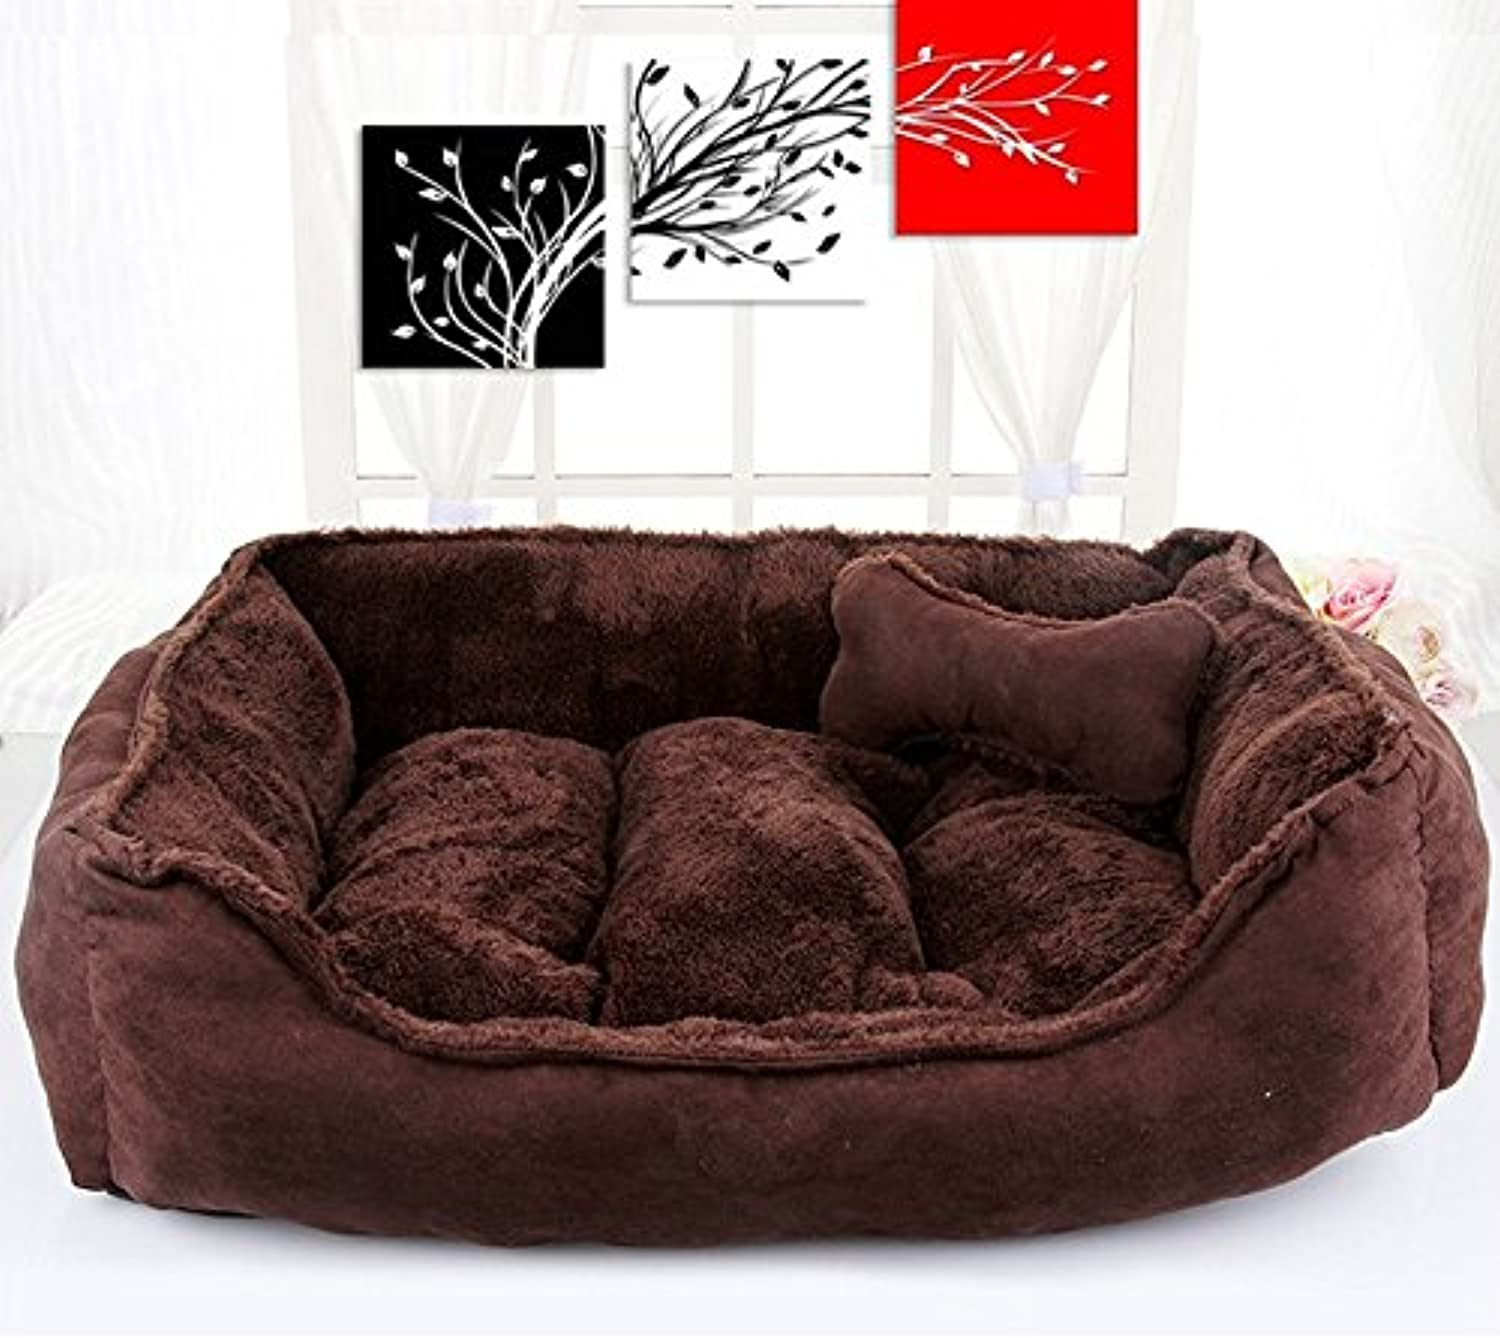 NYDZDM Kennel Four Seasons Universal Removable Washable Poodle Nest Small and Medium Dog Bed Cat Litter Mat Pet Supplies (color  Deep Coffee) Bones (Size   S)